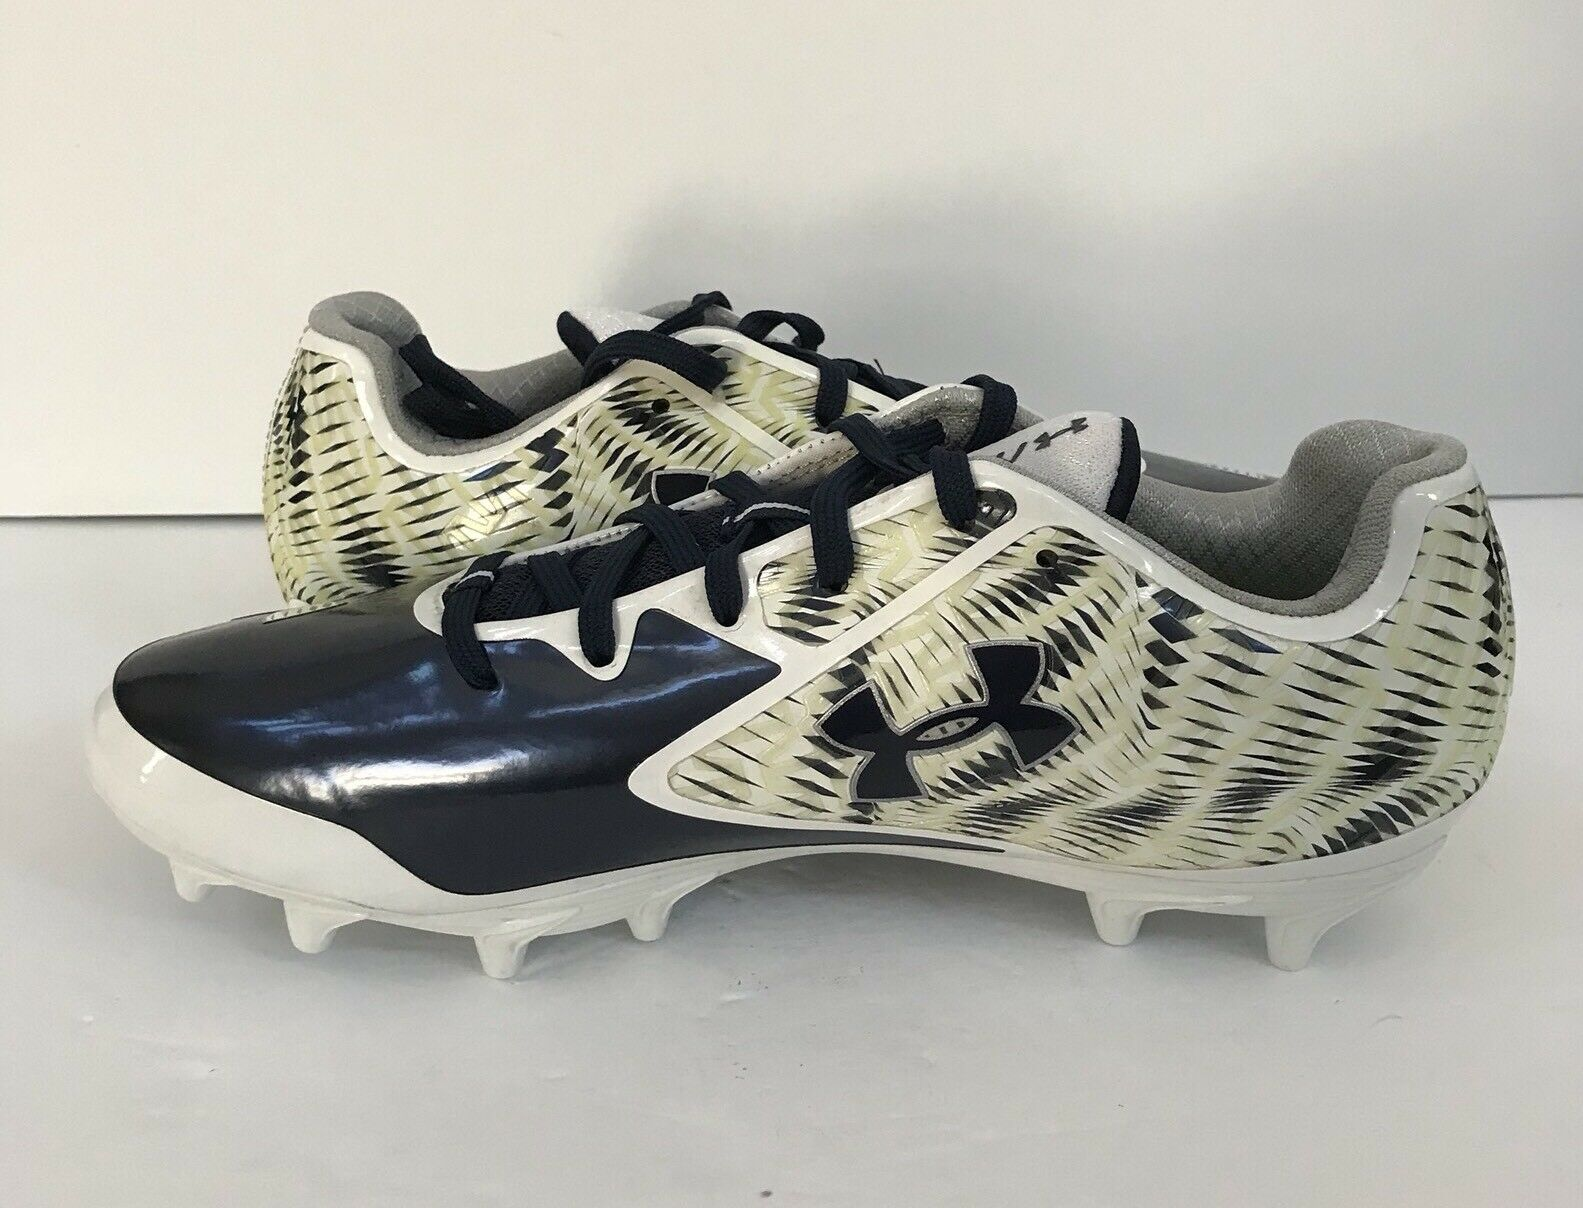 UA Cleats Nitro Niedrig MC Football Cleats UA Weiß/Mdn #1258018-142  Uomo 8.5 c6a3b7